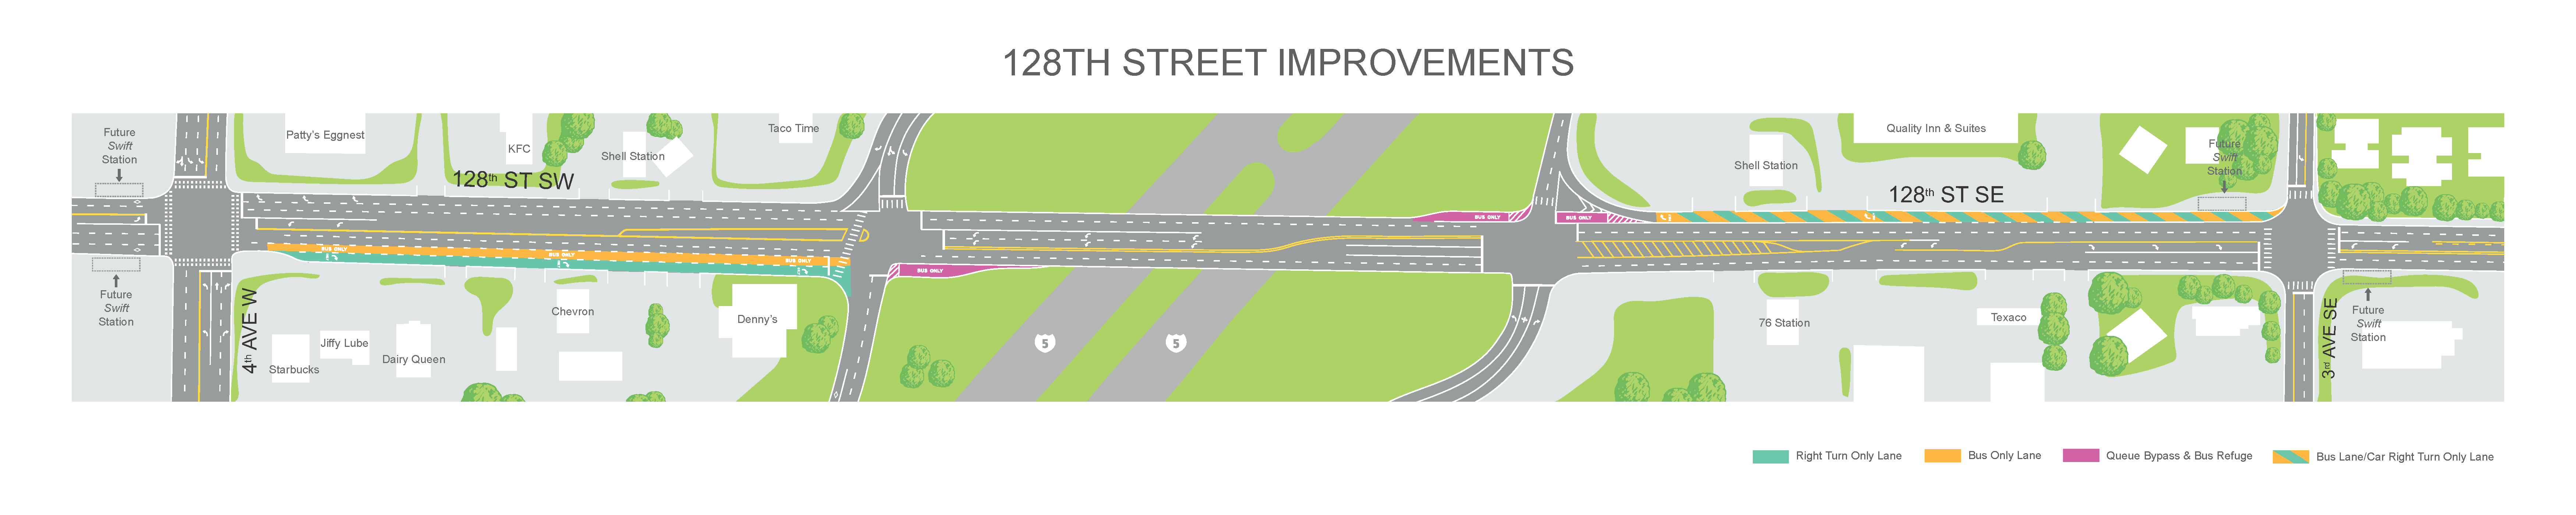 Map showing 128th Street Improvements